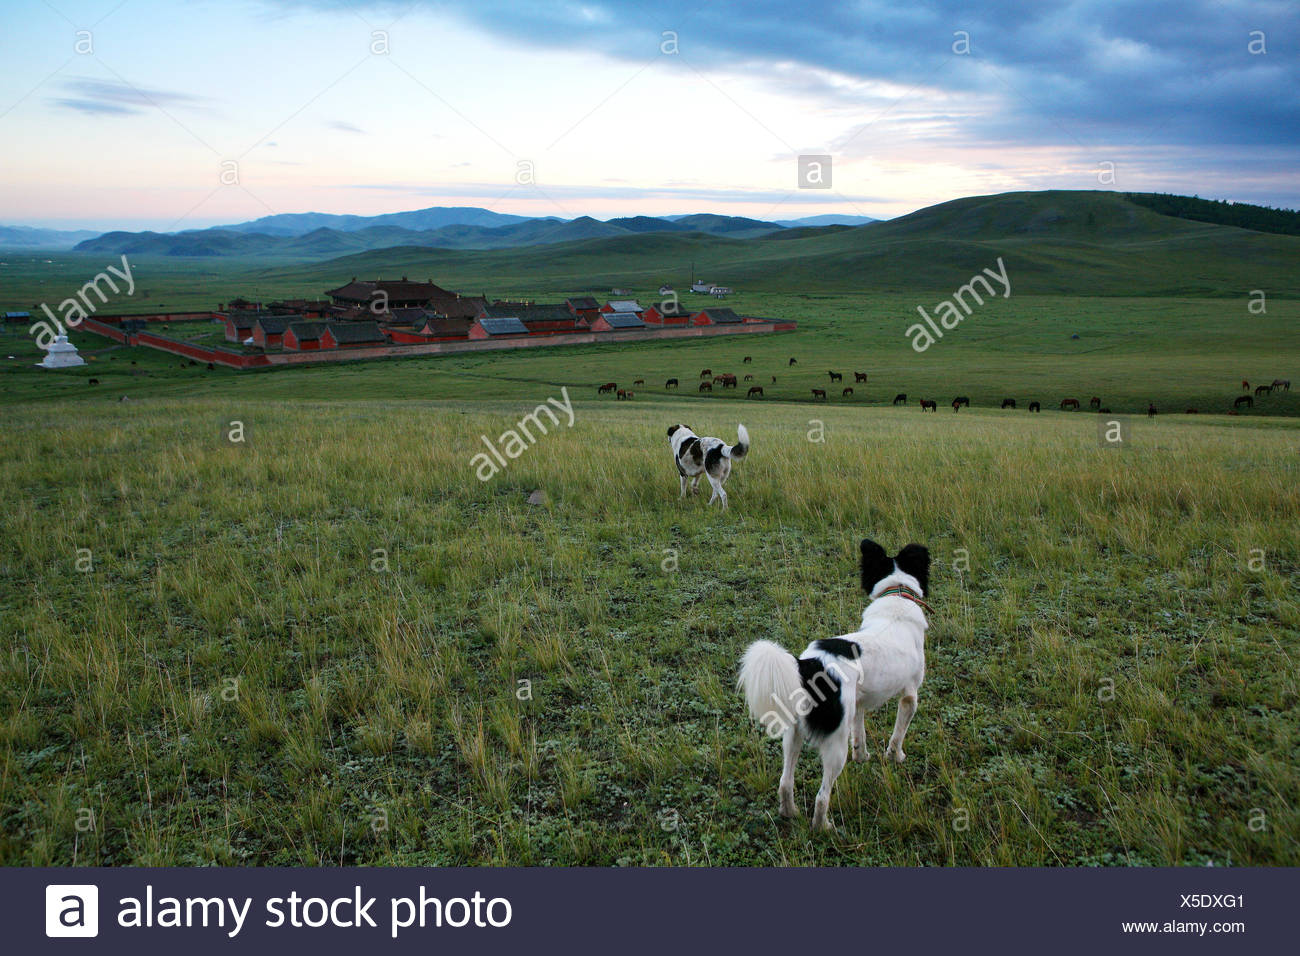 The Amarbayasgalant monastery in the northern Mongolia, Selenge province Stock Photo